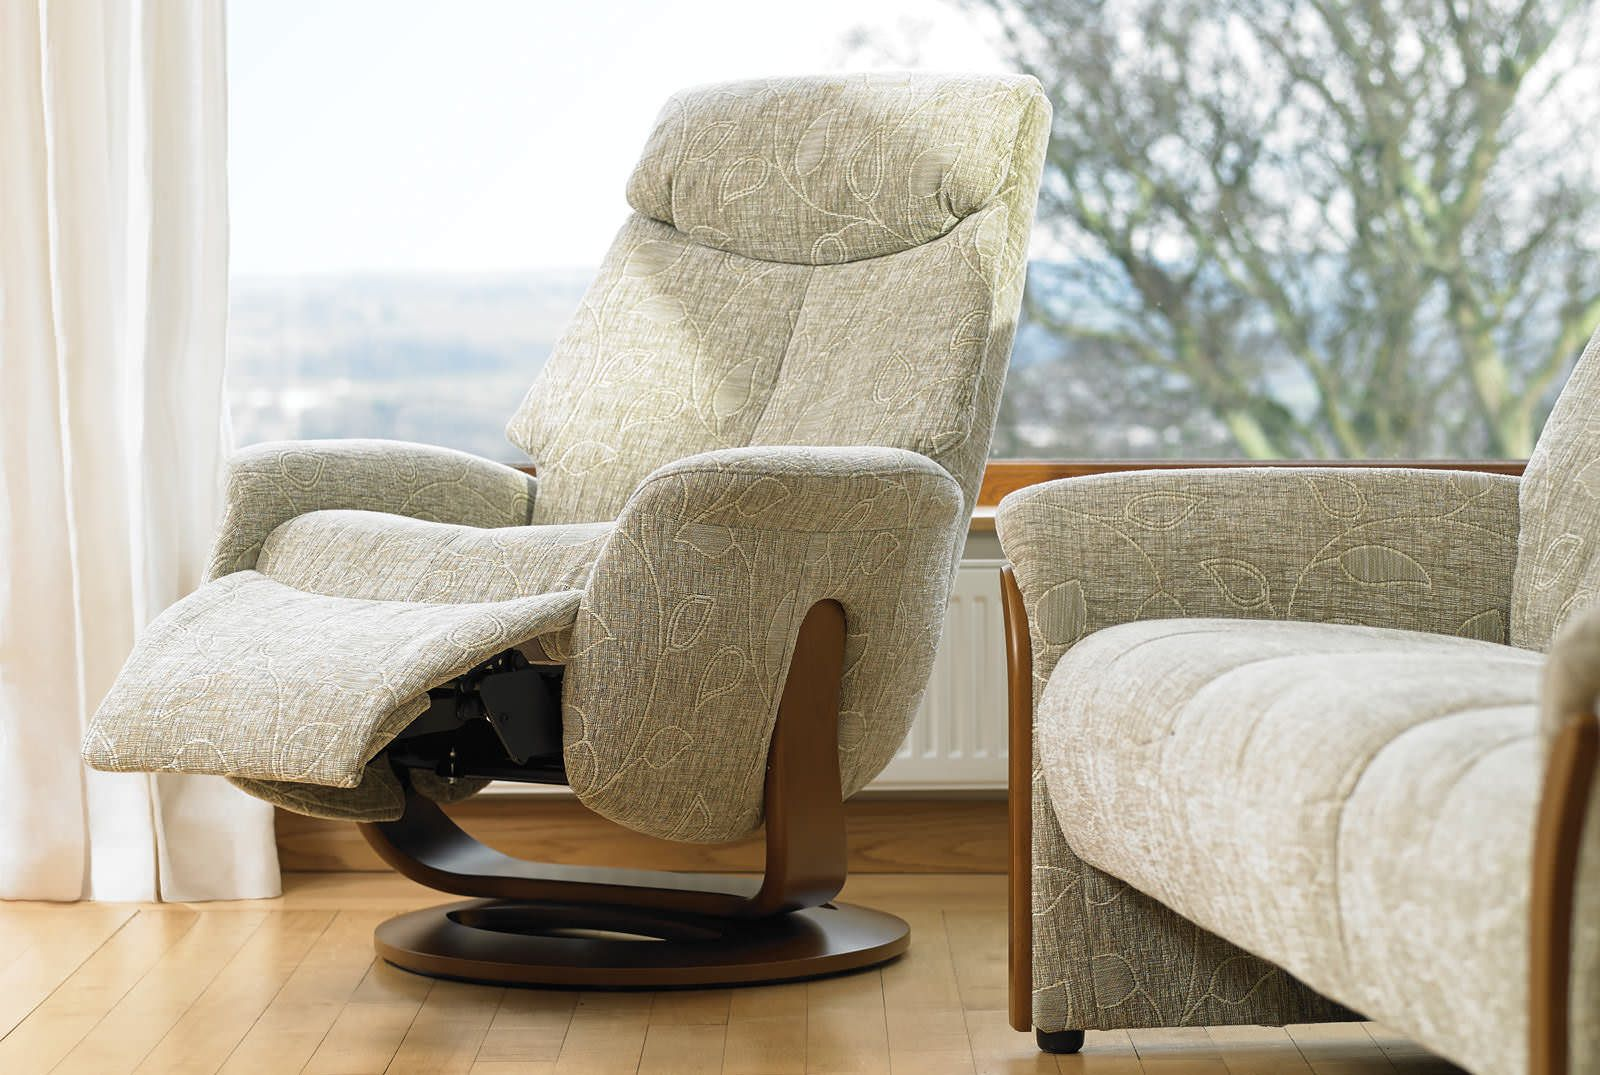 Swivel Reclining Chairs For Living Room Green Colors Walls Appealing Recliner Automated System Home Furniture Ideas Leather Rocker Chair